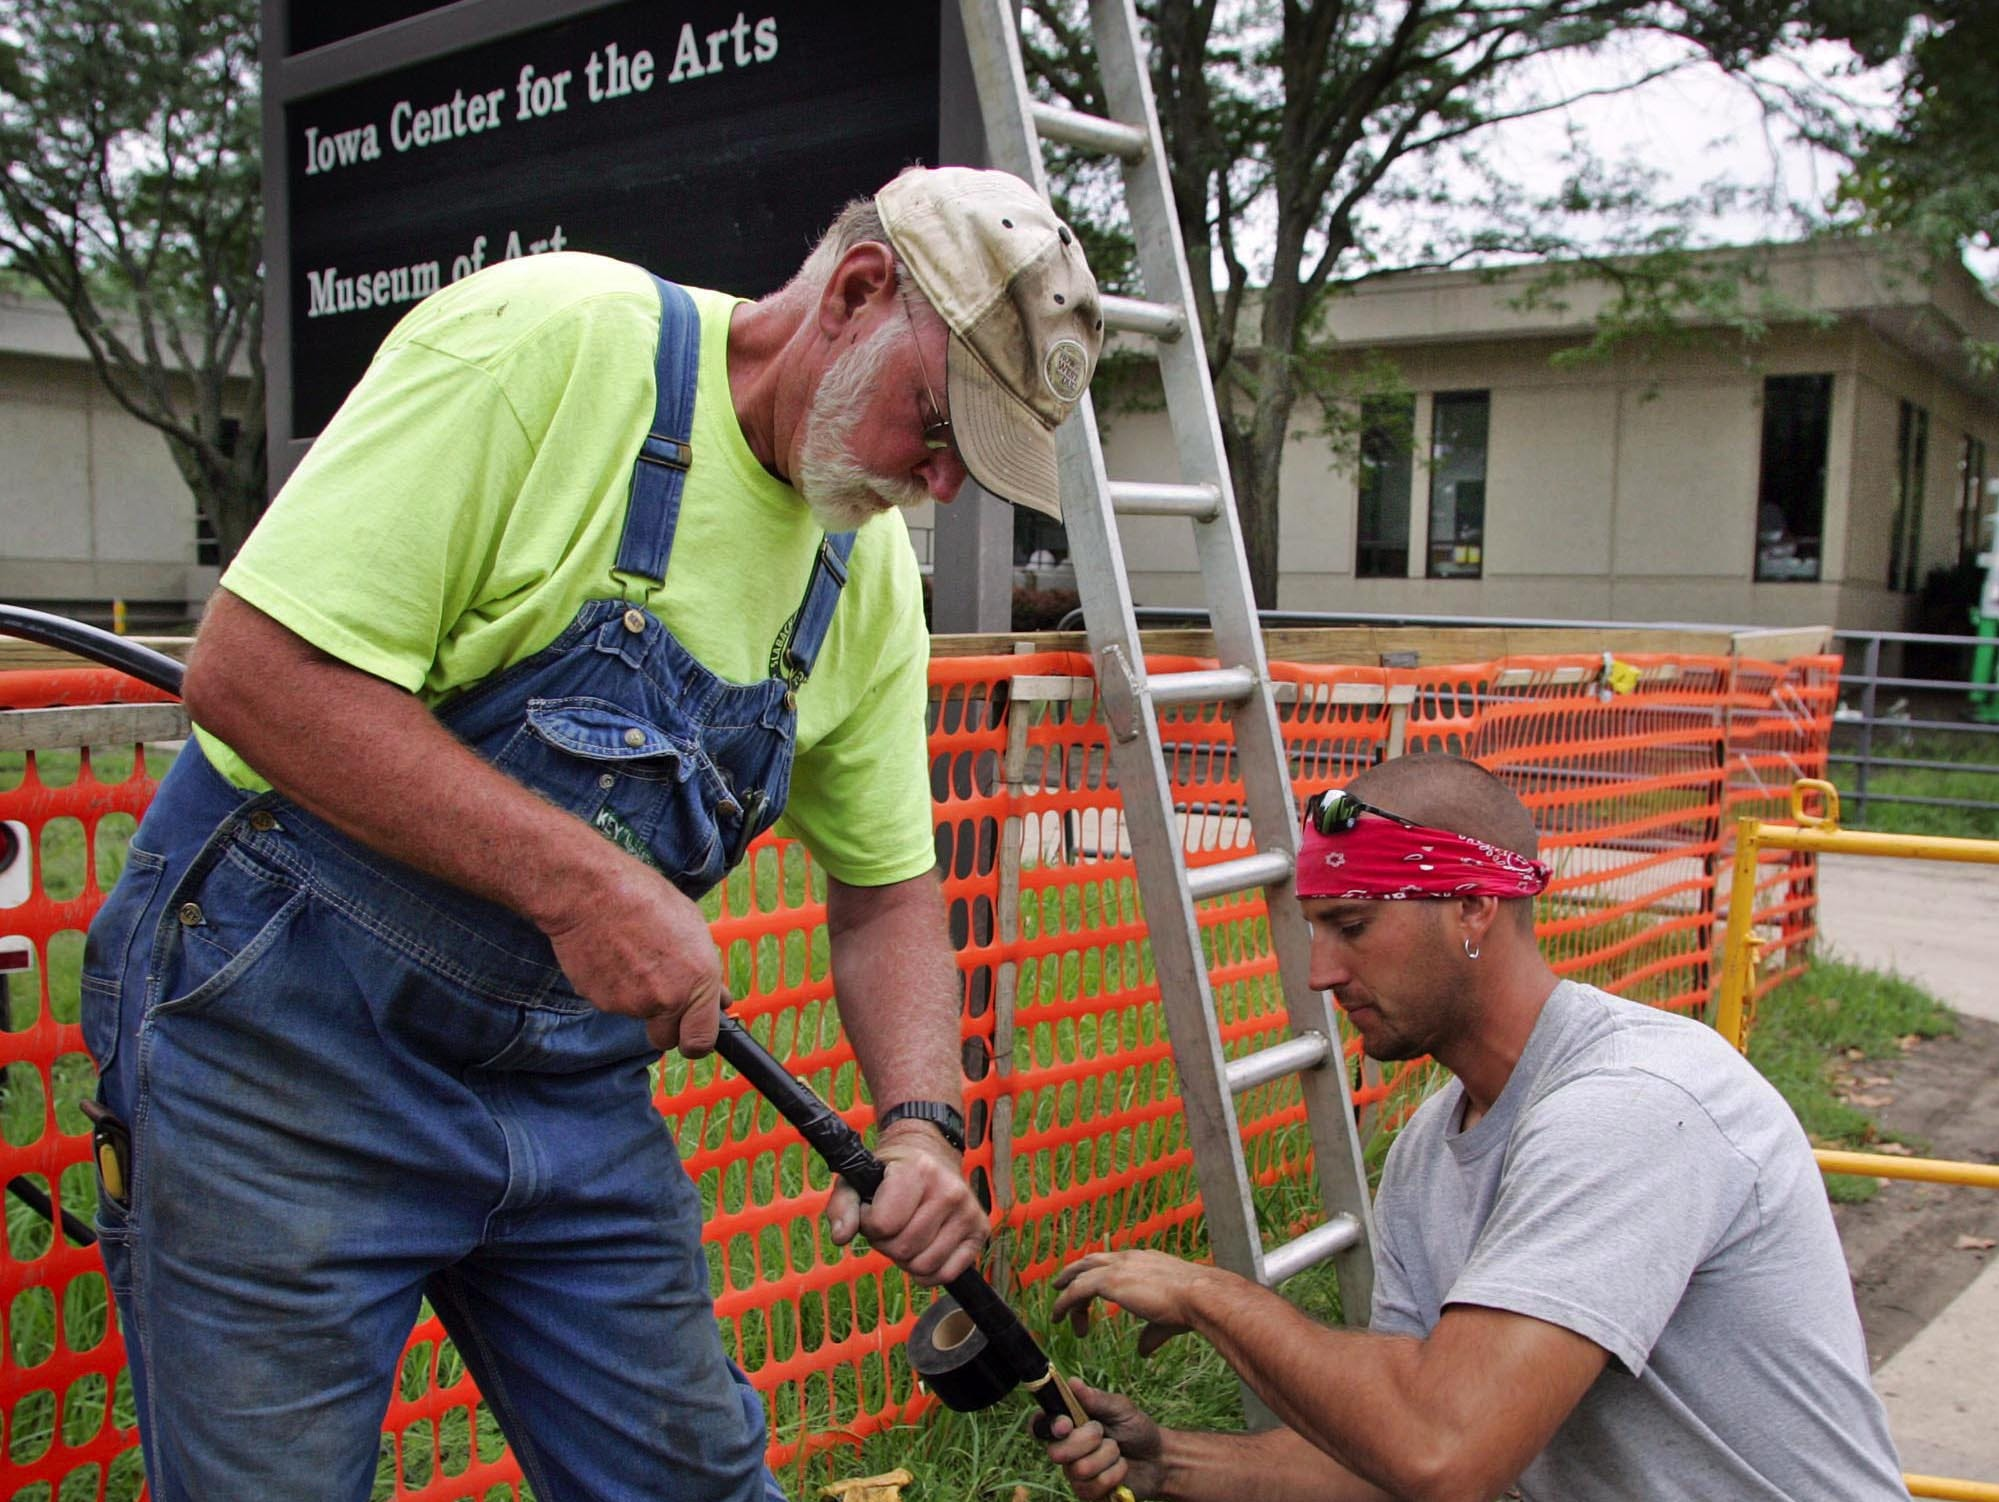 Lewis Payne, left and Tyler Hershberger, with Slabach Construction of Kalona, work with fiber optic cable outside the University of Iowa Museum of Art, background, as flood repairs continue on Wednesday. Officials said that music students will use the the building for practice space.